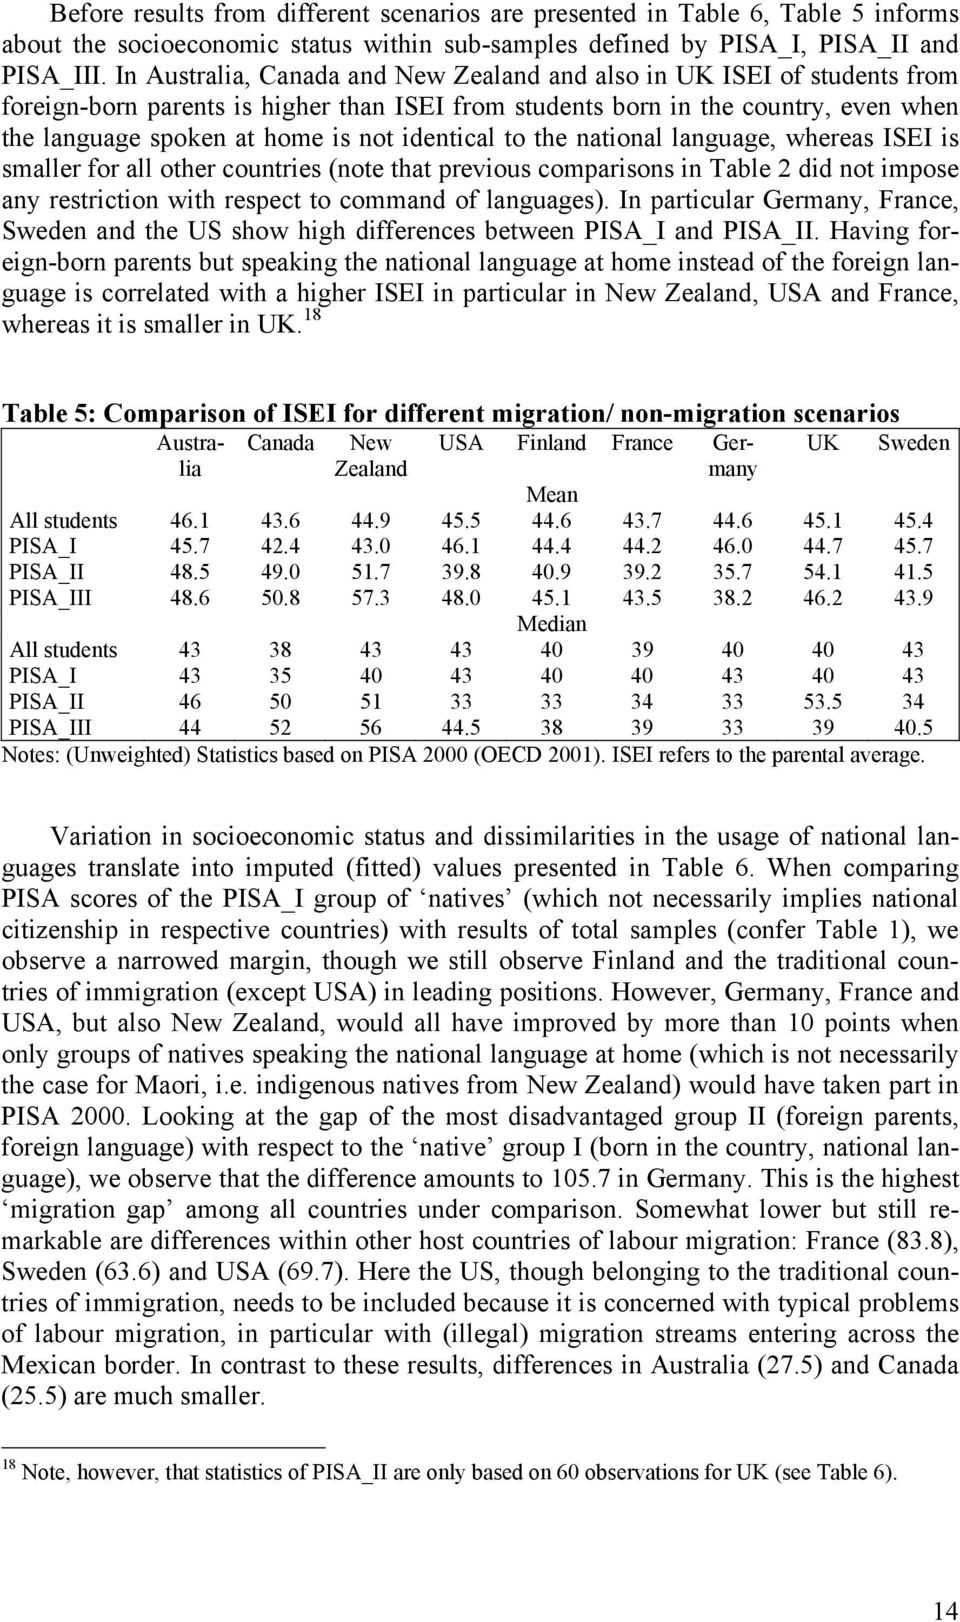 national language, whereas ISEI is smaller for all other countries (note that previous comparisons in Table 2 did not impose any restriction with respect to command of languages).